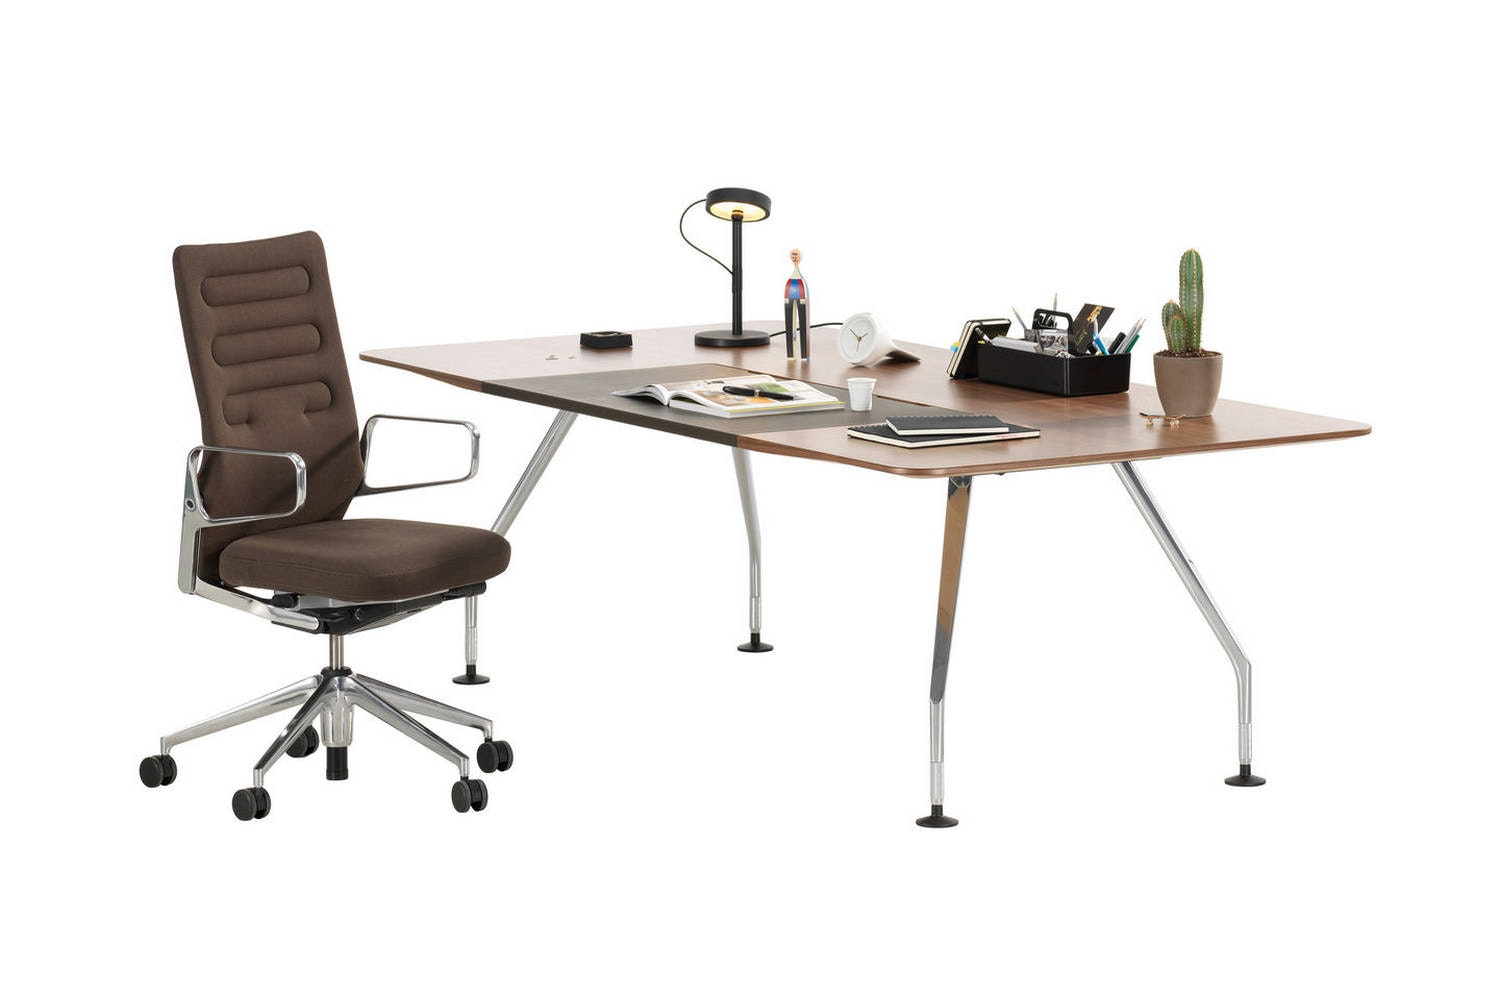 Captivating Ad Hoc Executive Table By Antonio Citterio For Vitra